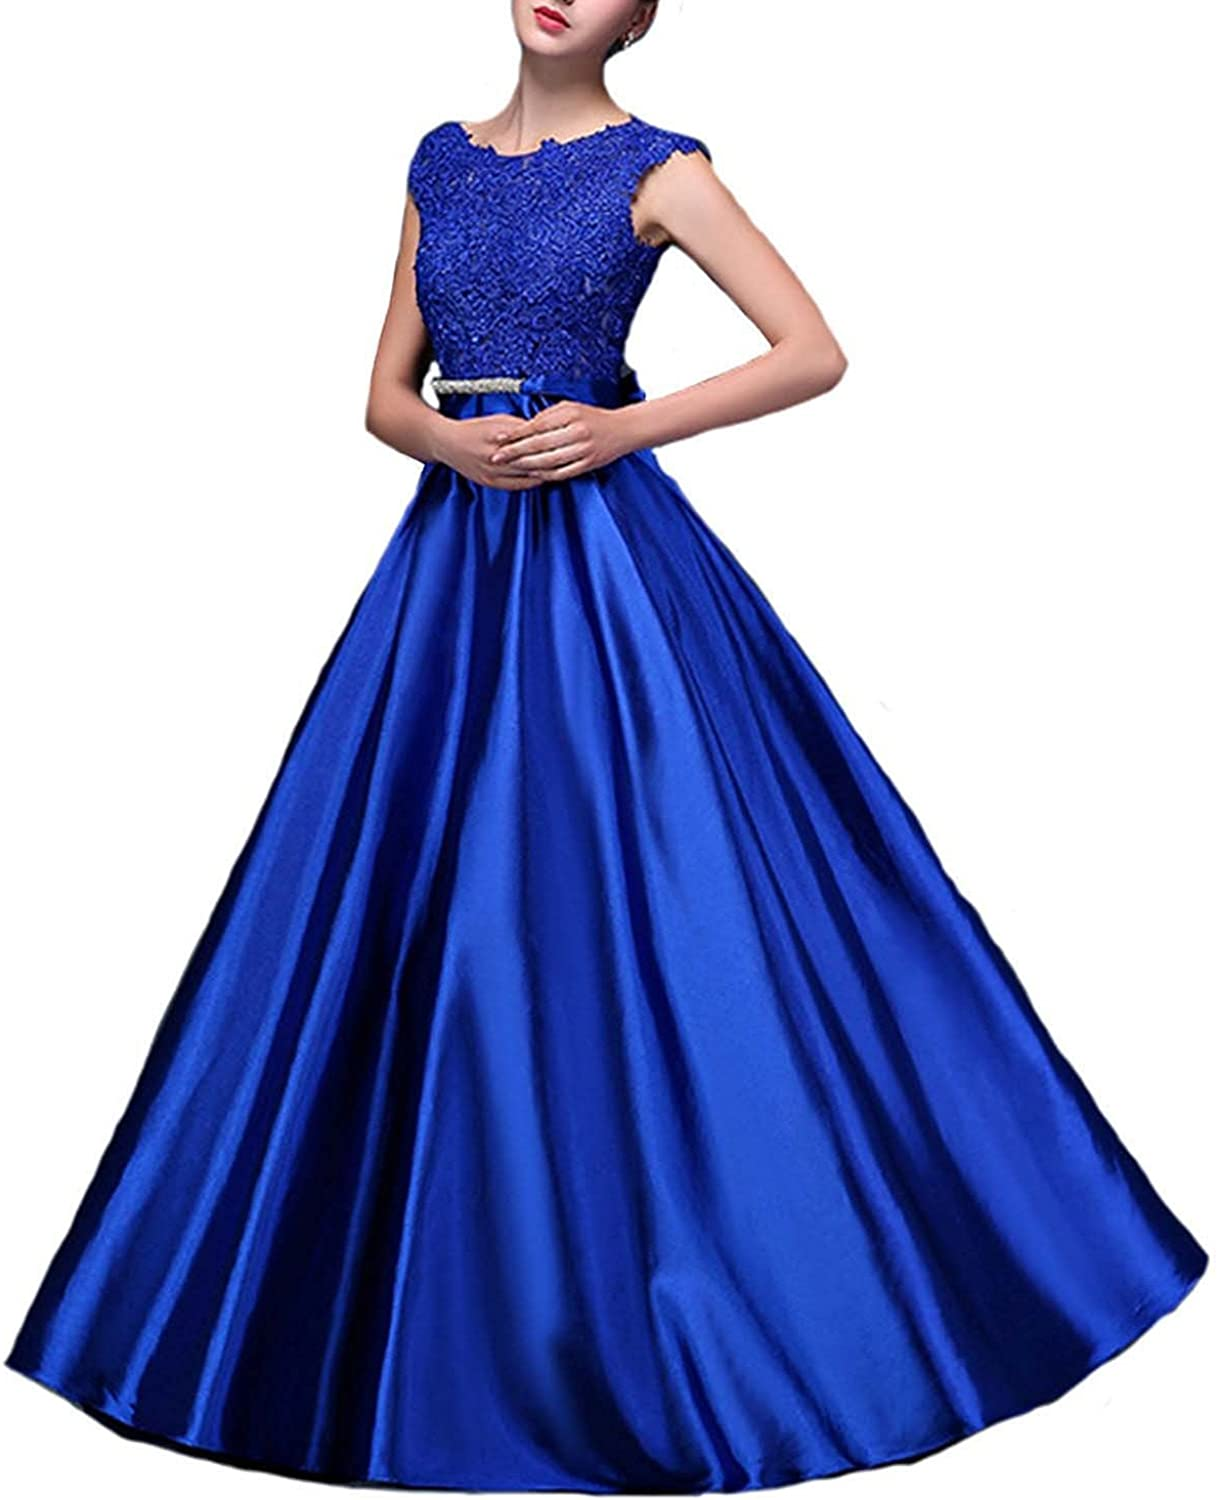 QiJunGe Long Satin Appliqued Evening Prom Dresses with Bow Knot Sash